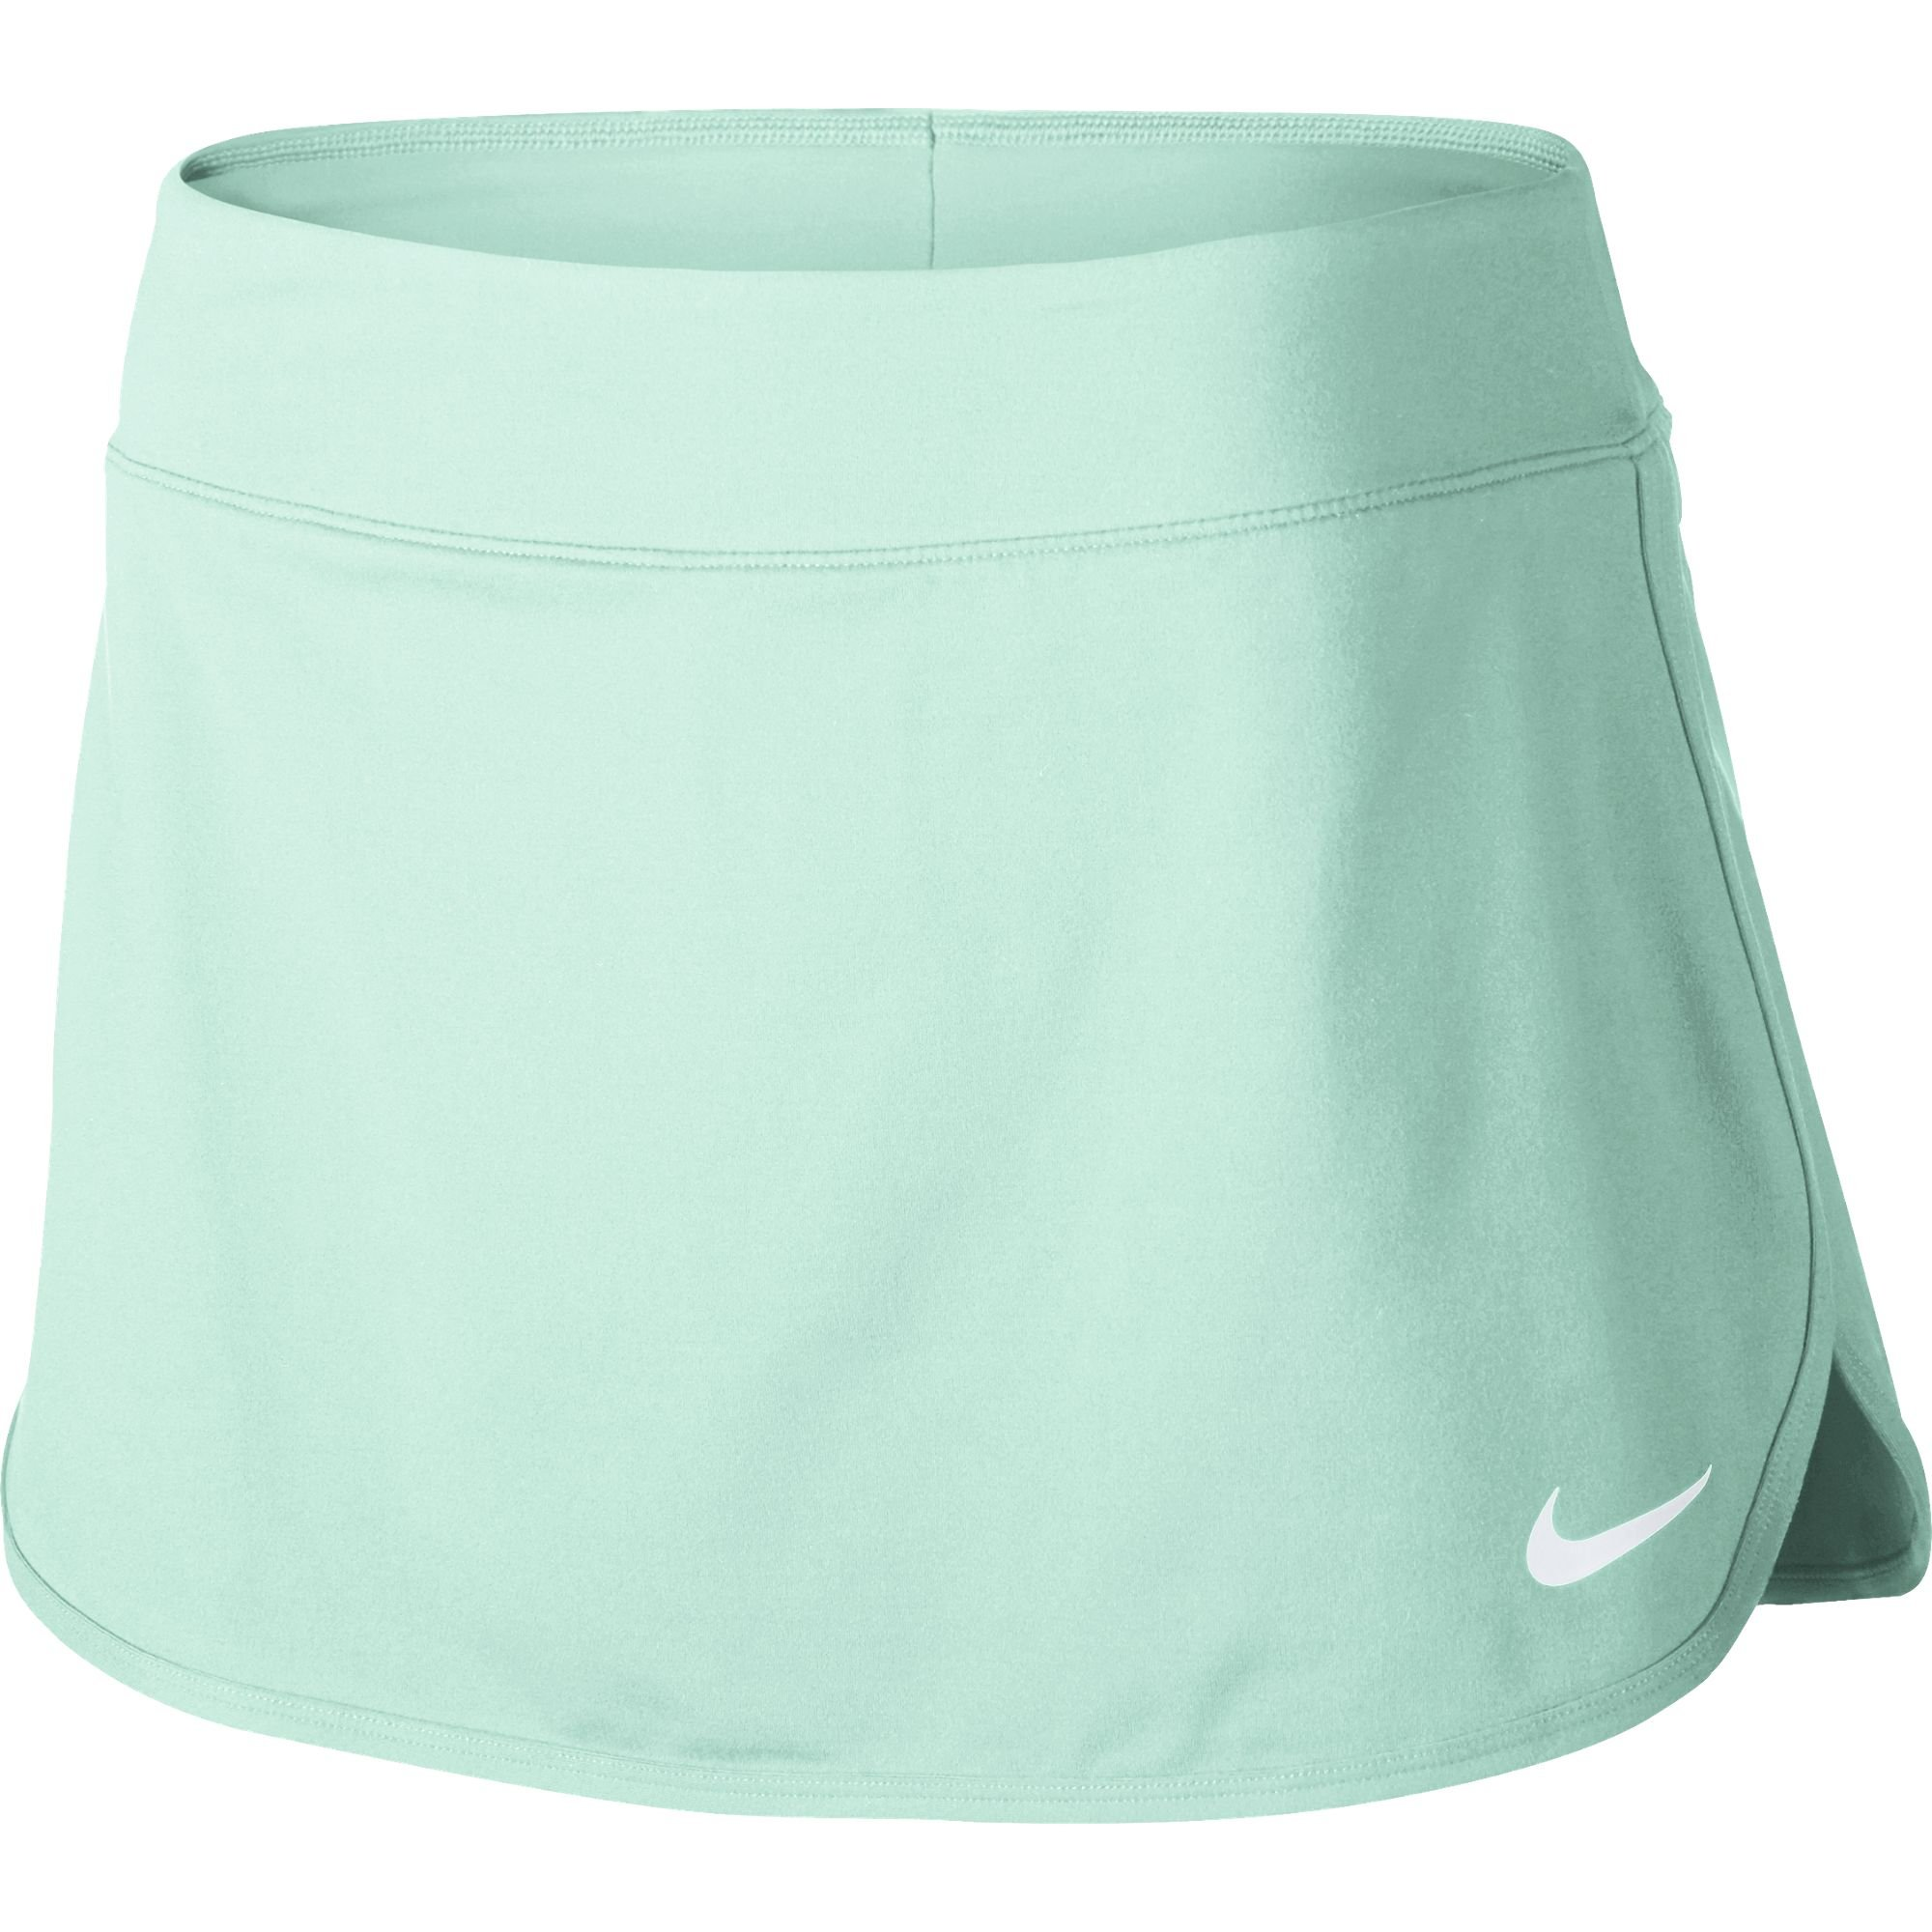 W NKCT Pure Skirt Women's Tennis Skirt, Igloo/White, Medium